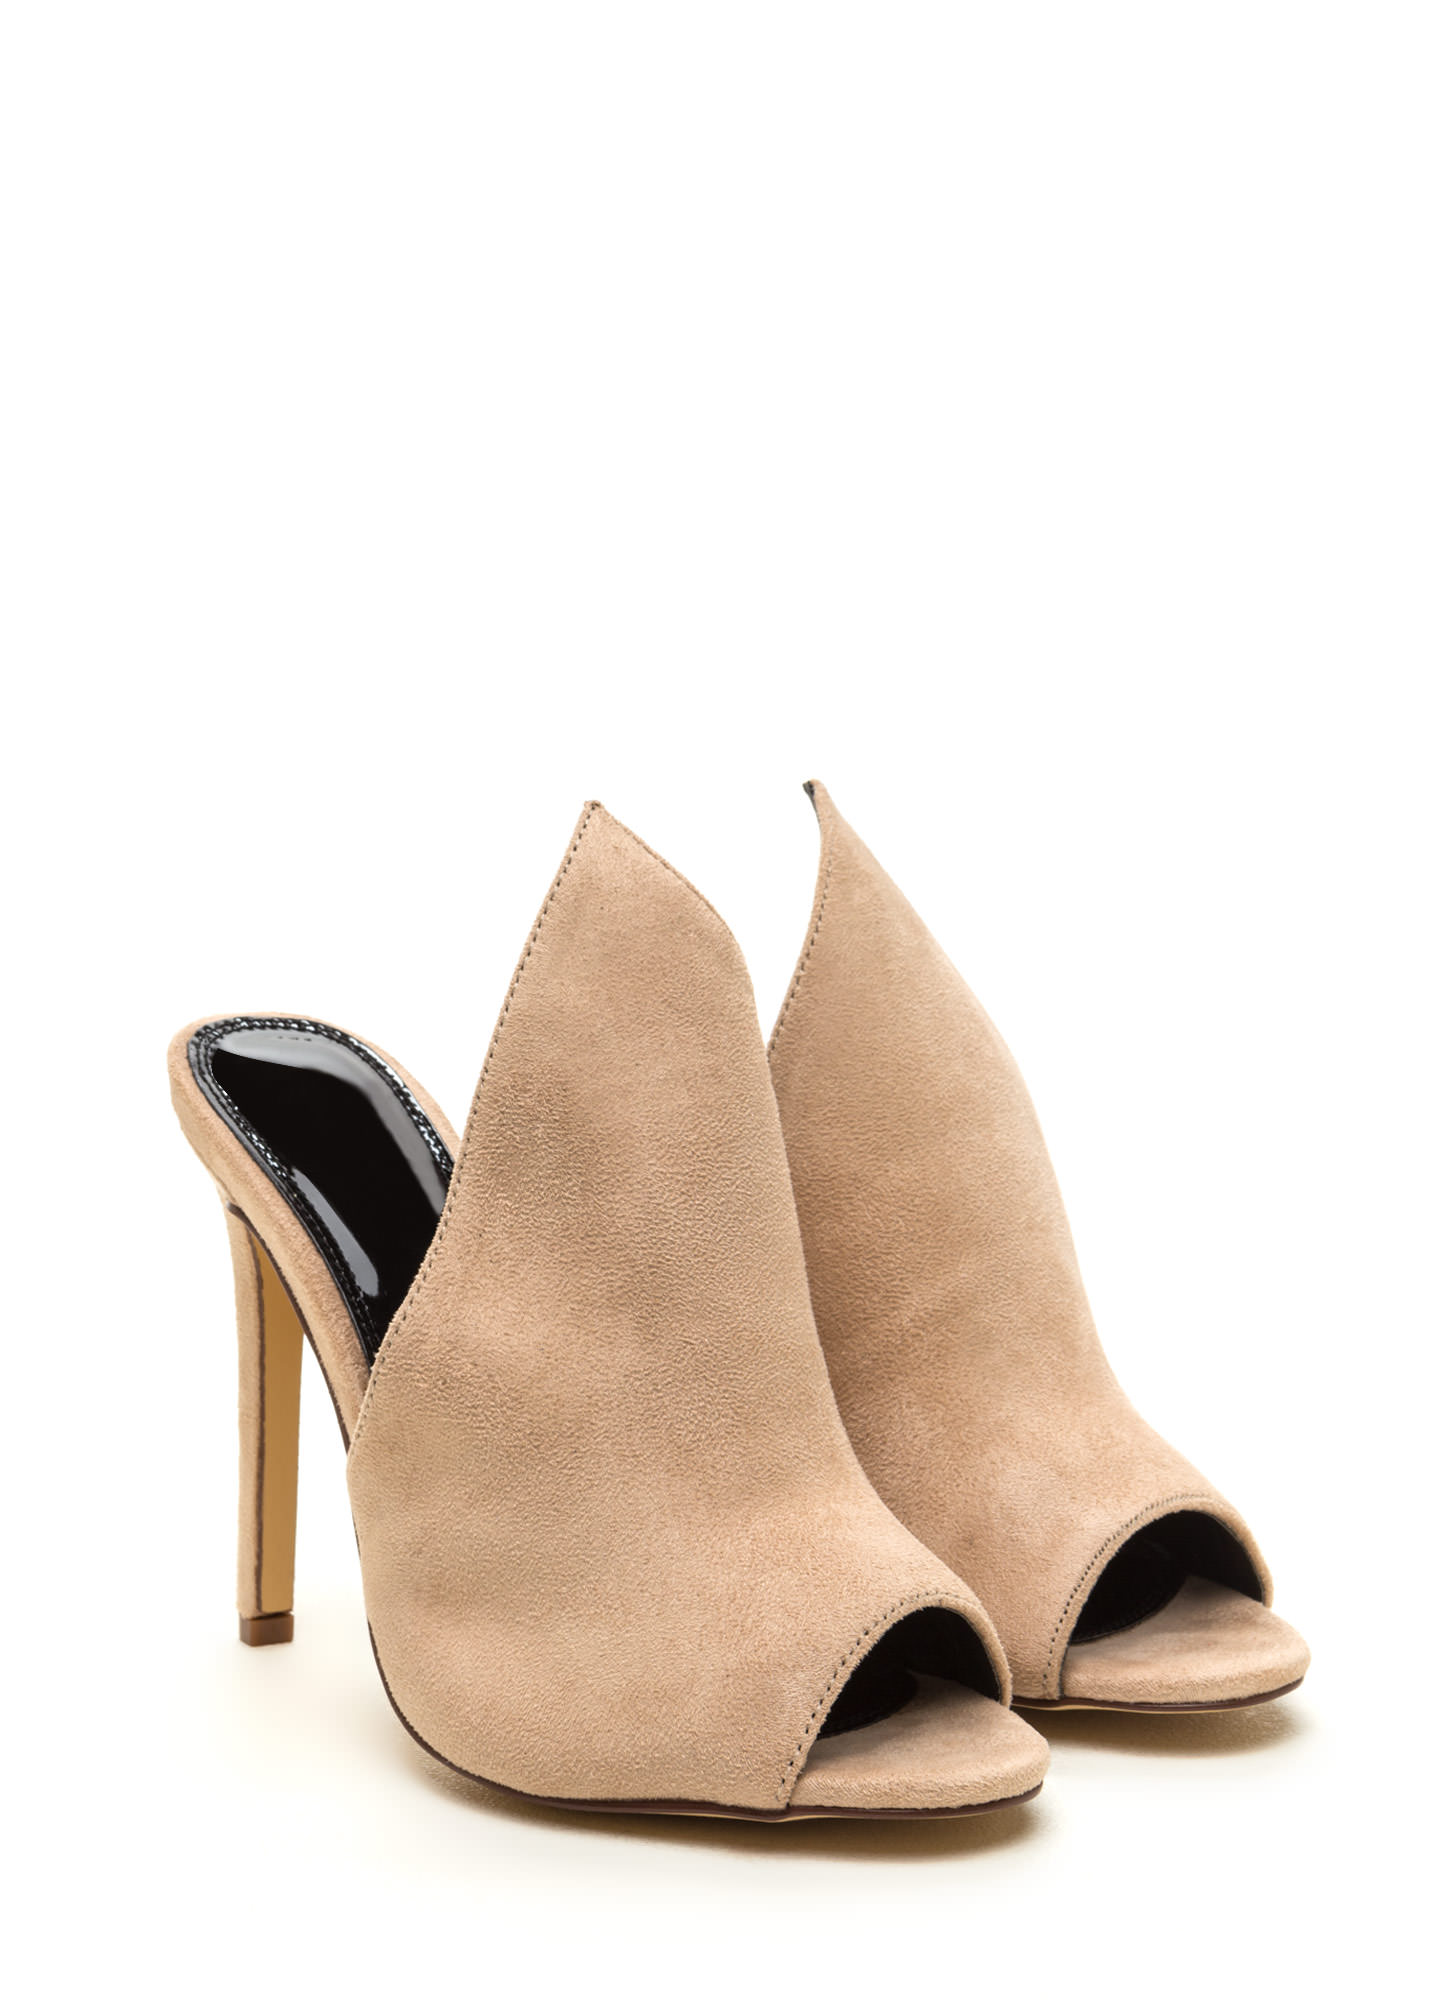 To The Point Faux Suede Mule Heels NUDE